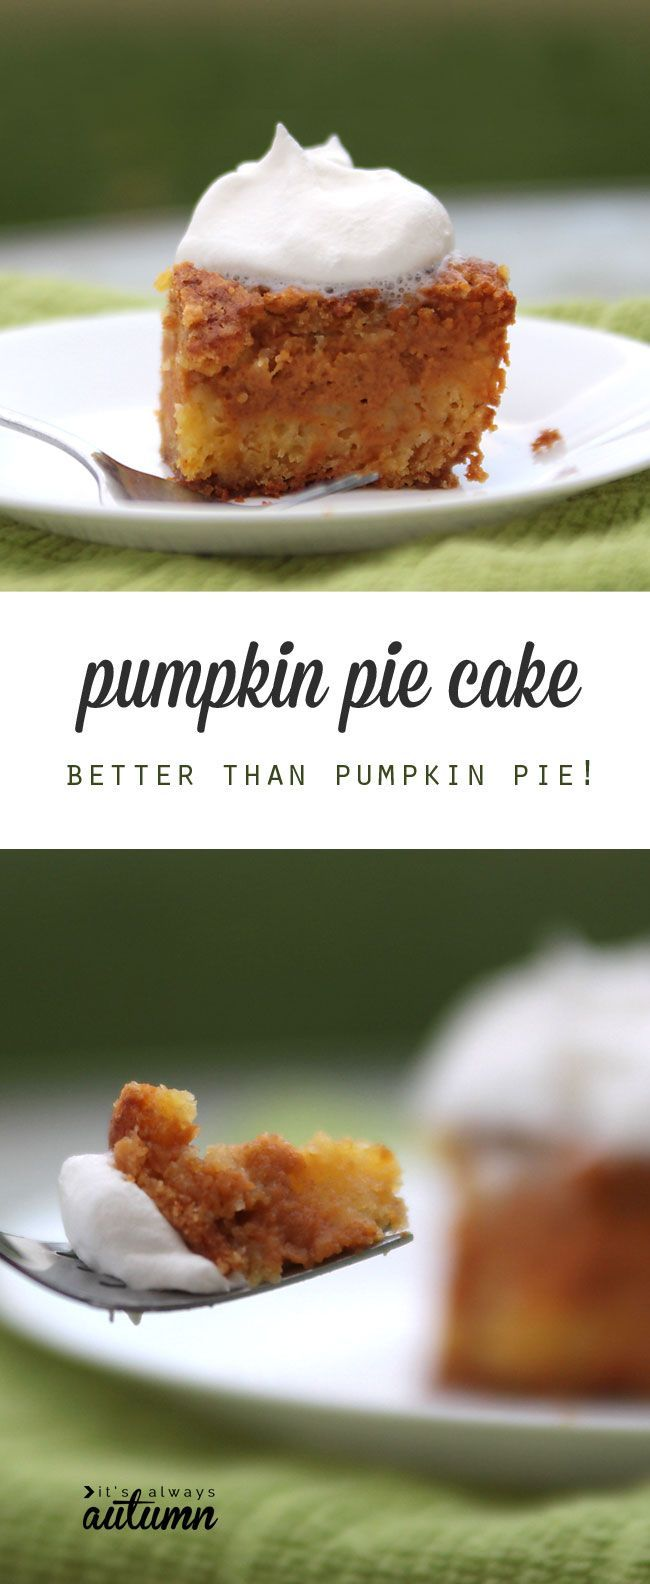 This Pumpkin Pie Cake recipe is so delicious! It's easy-to-make and ...